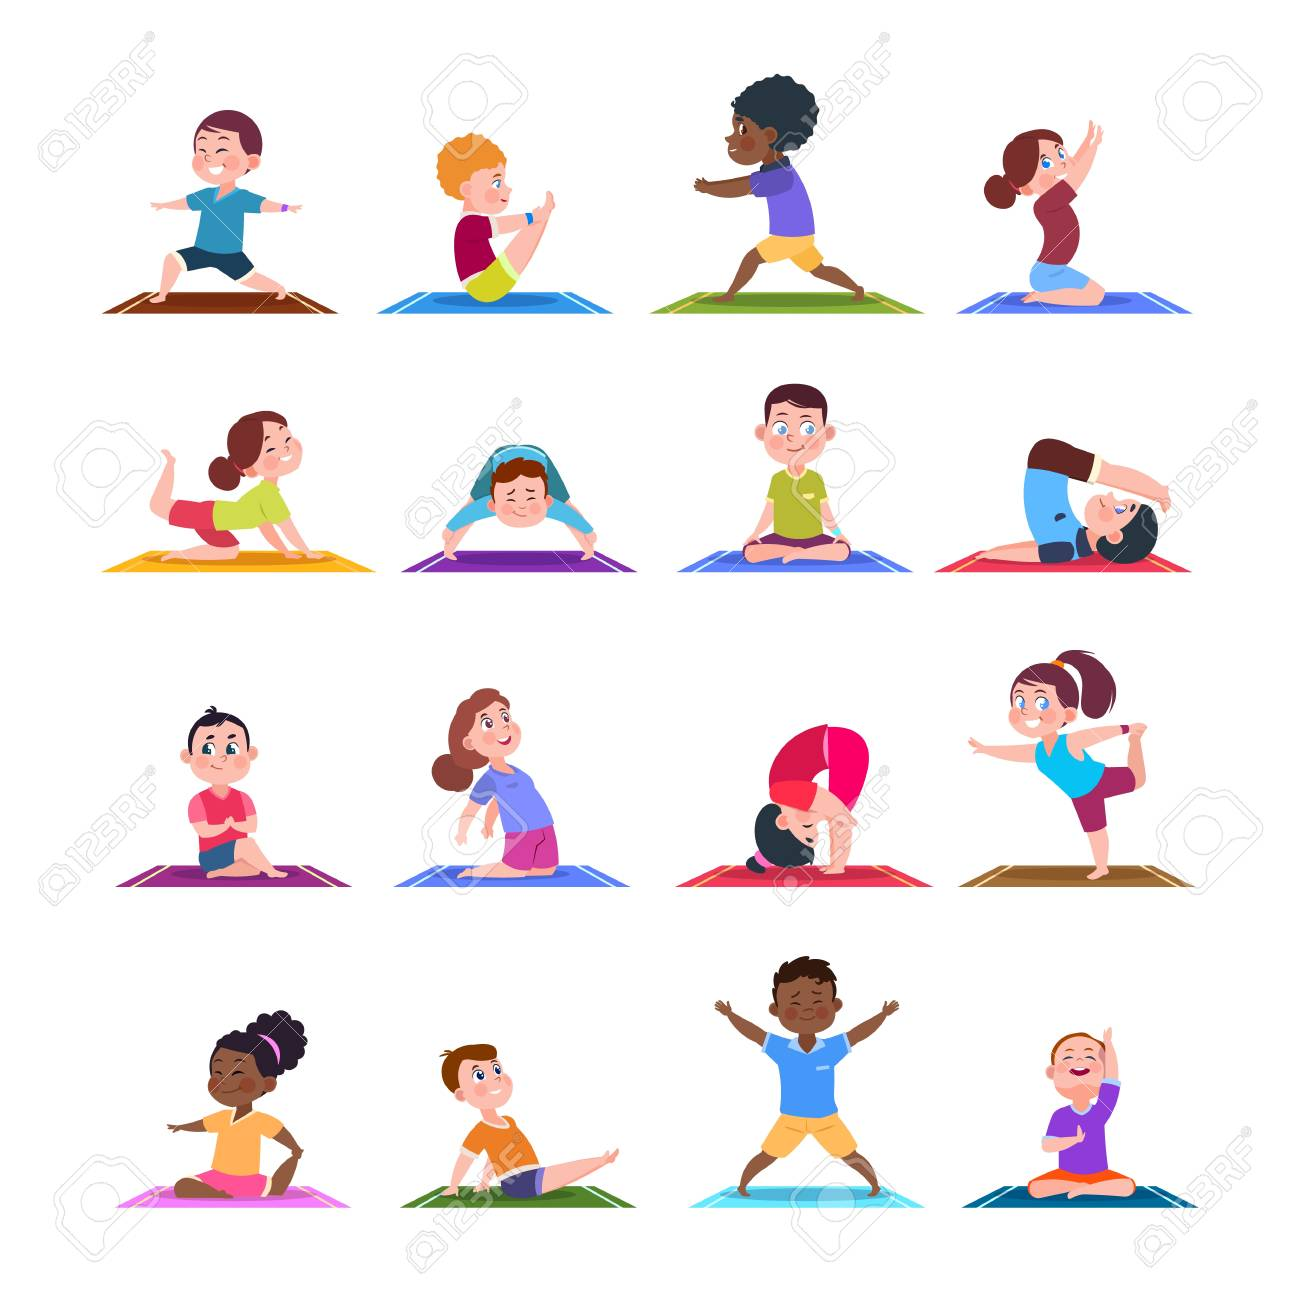 Children In Yoga Poses Cartoon Fitness Kids In Yoga Asana Vector Royalty Free Cliparts Vectors And Stock Illustration Image 128172730